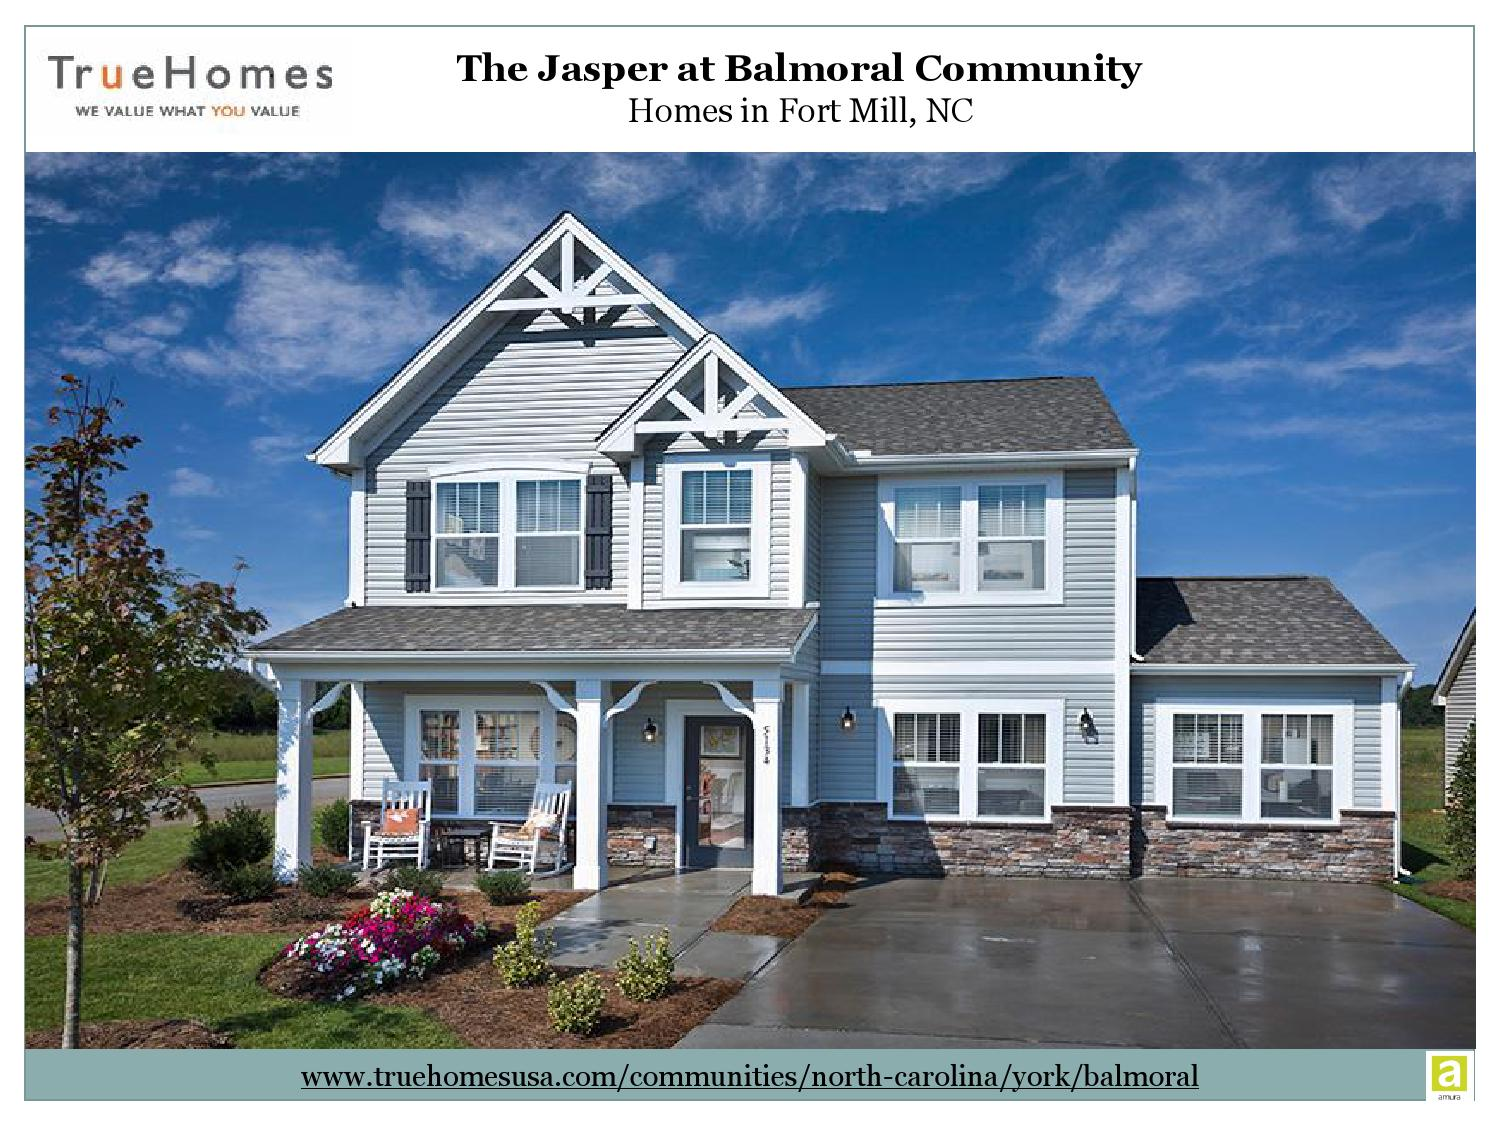 Homes For Sale In Fort Mill Nc At The Jasper Balmoral